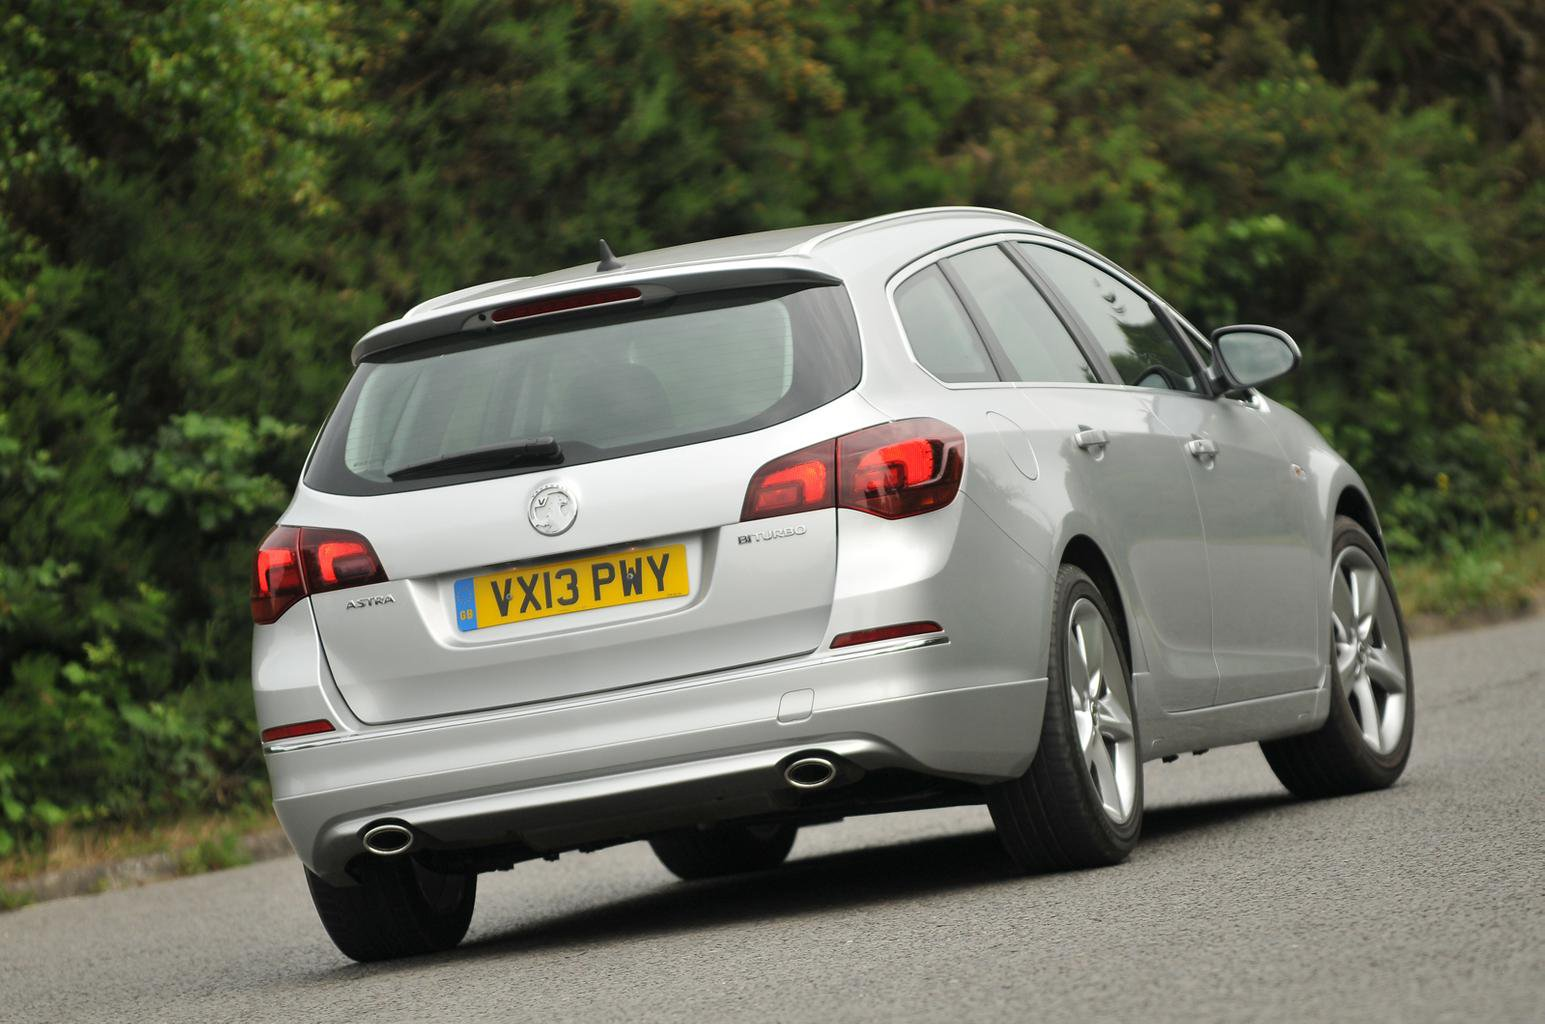 New Vauxhall Astra to be launched in 2015